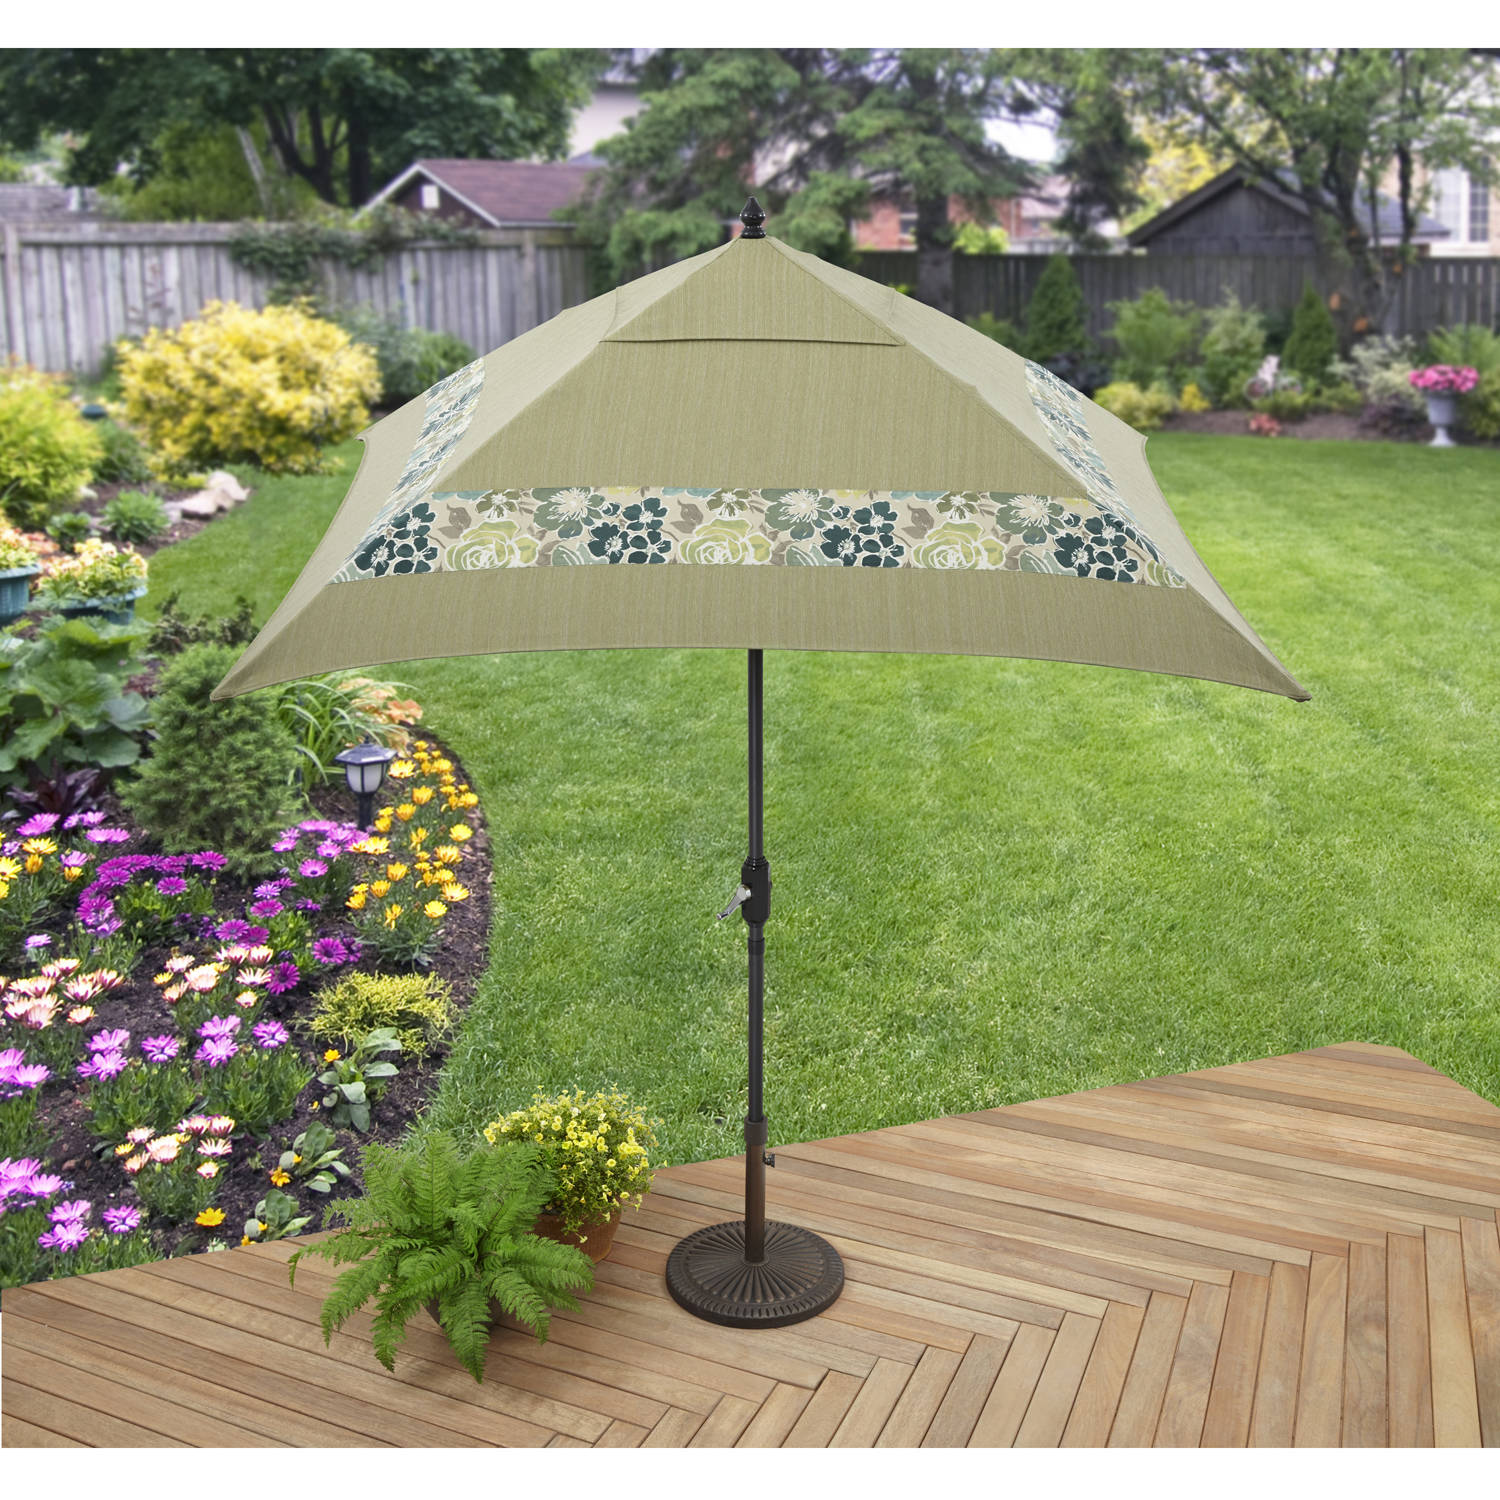 Better Homes and Gardens Jade Avenue Umbrella by Hangzhou Jinshi Hardware Co., Ltd.